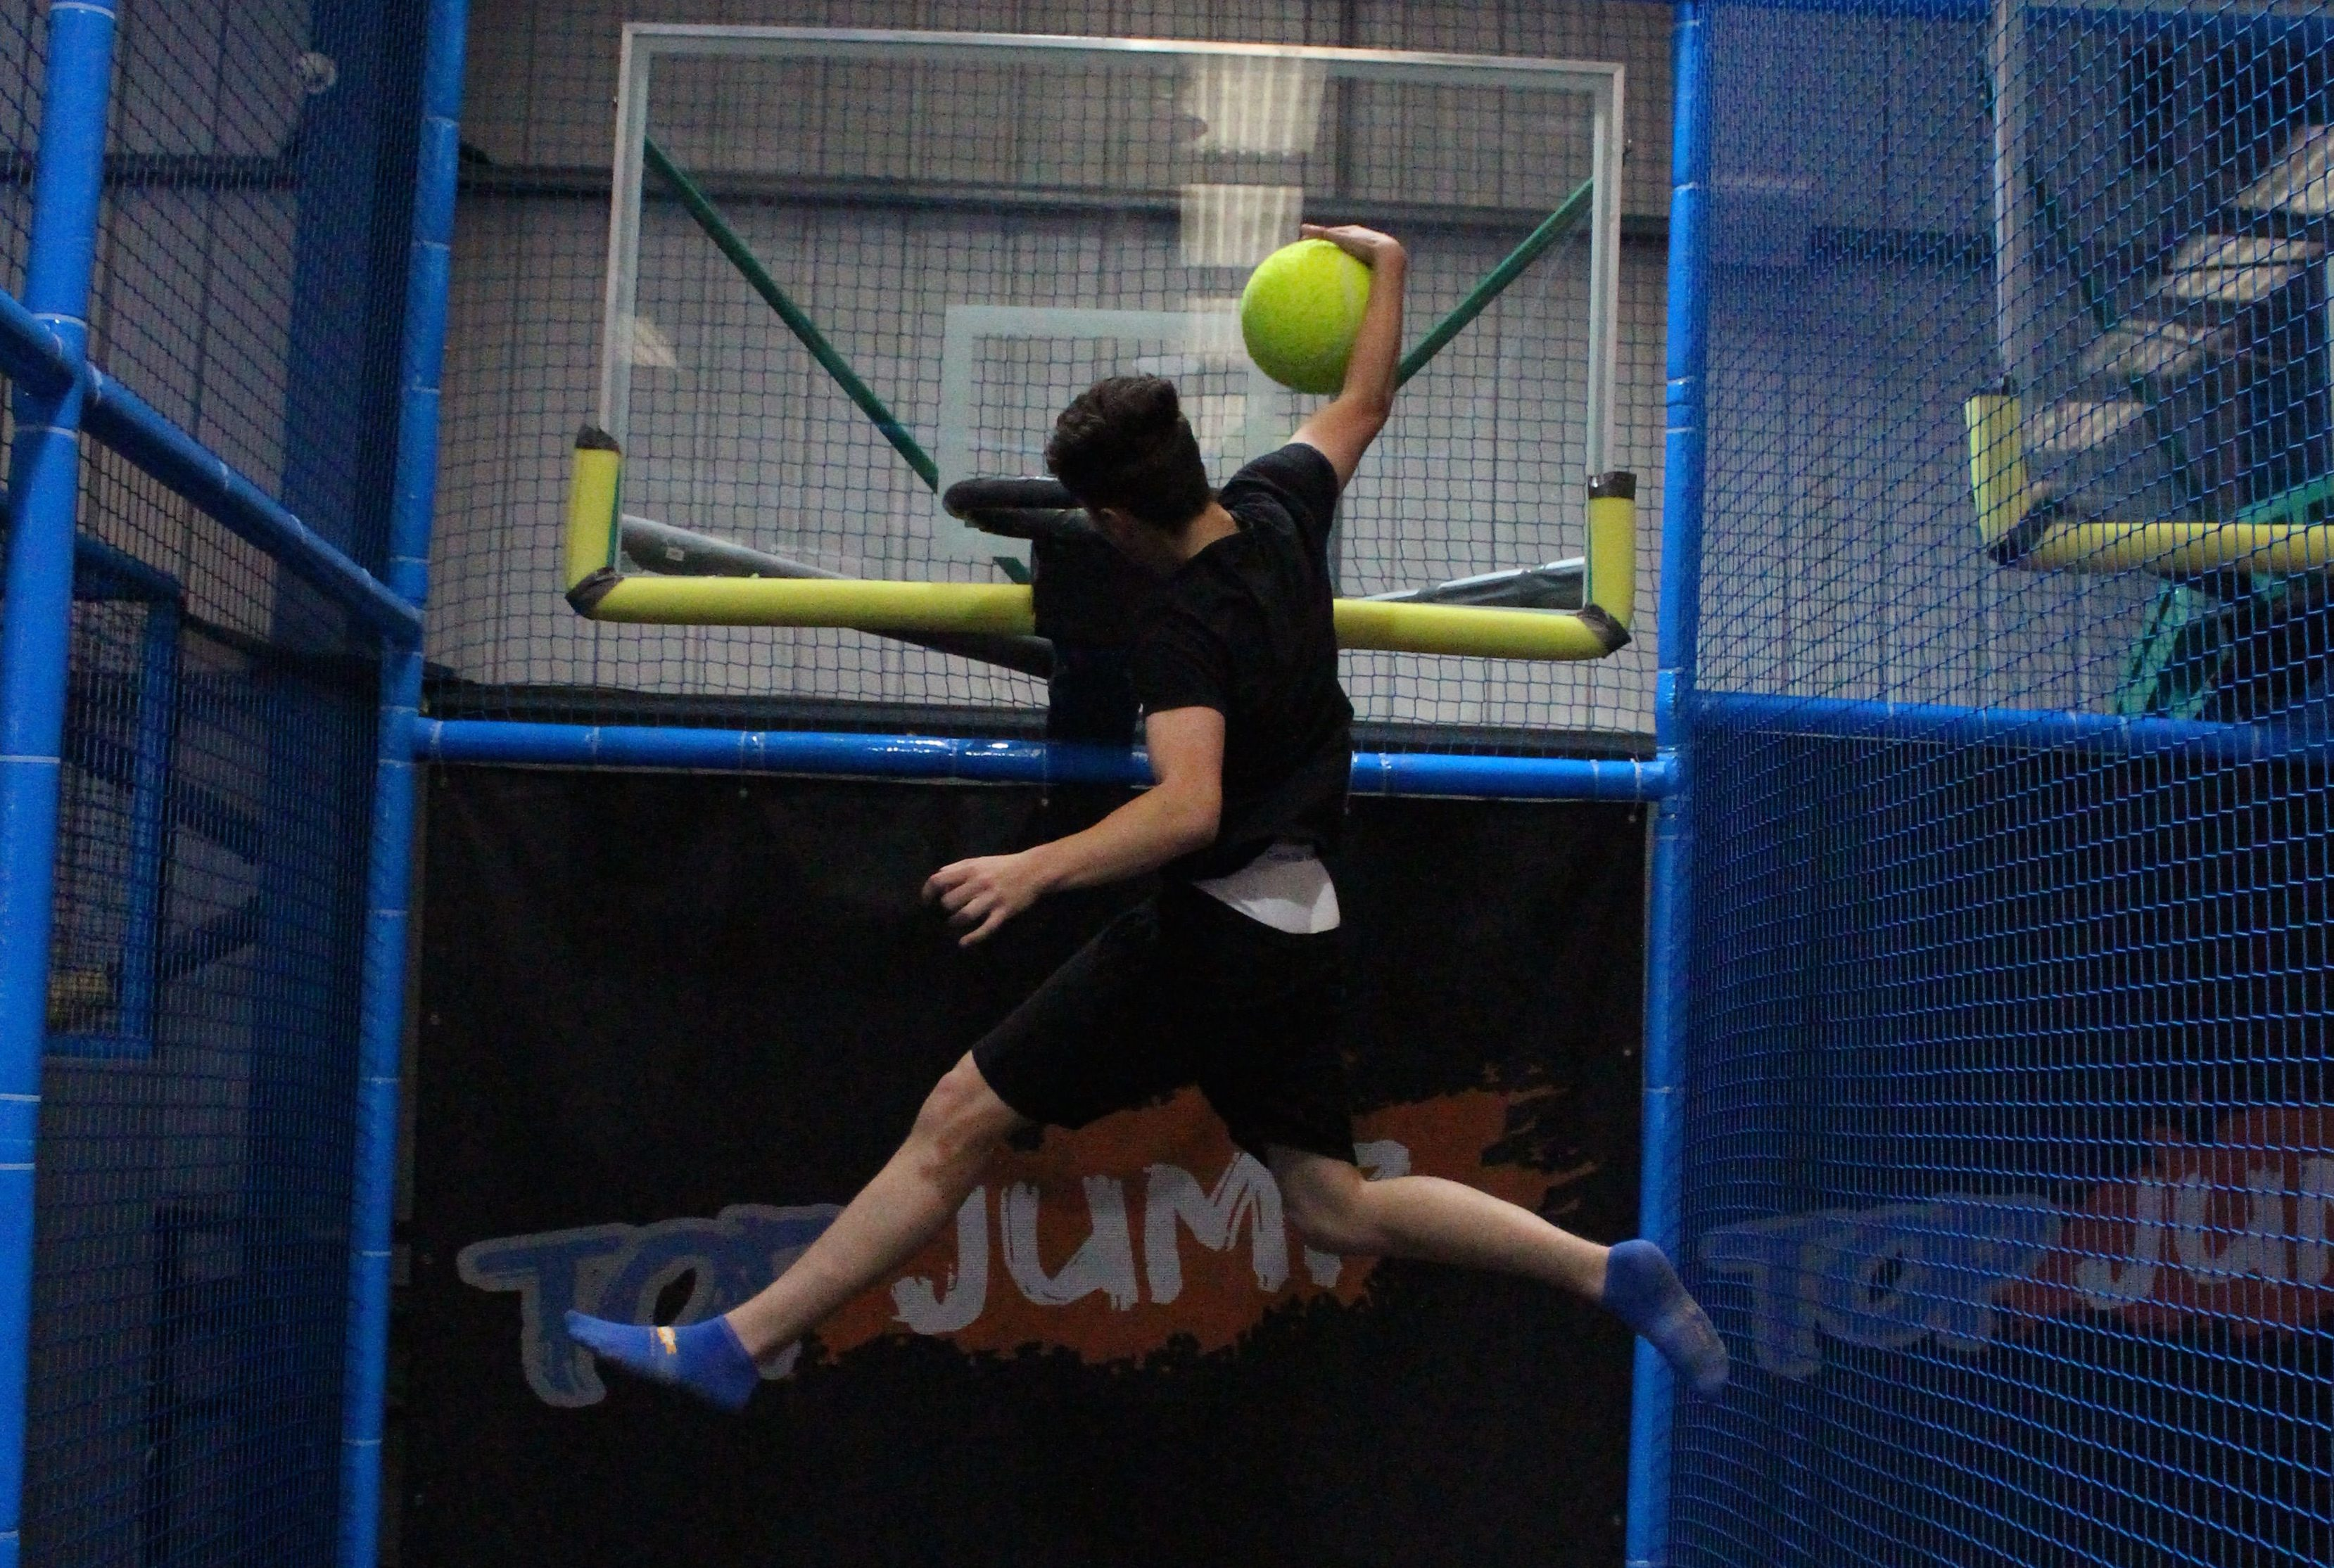 Forget Xscape and get down and defy gravity at Top Jump, Milton Keynes. Thumbnail